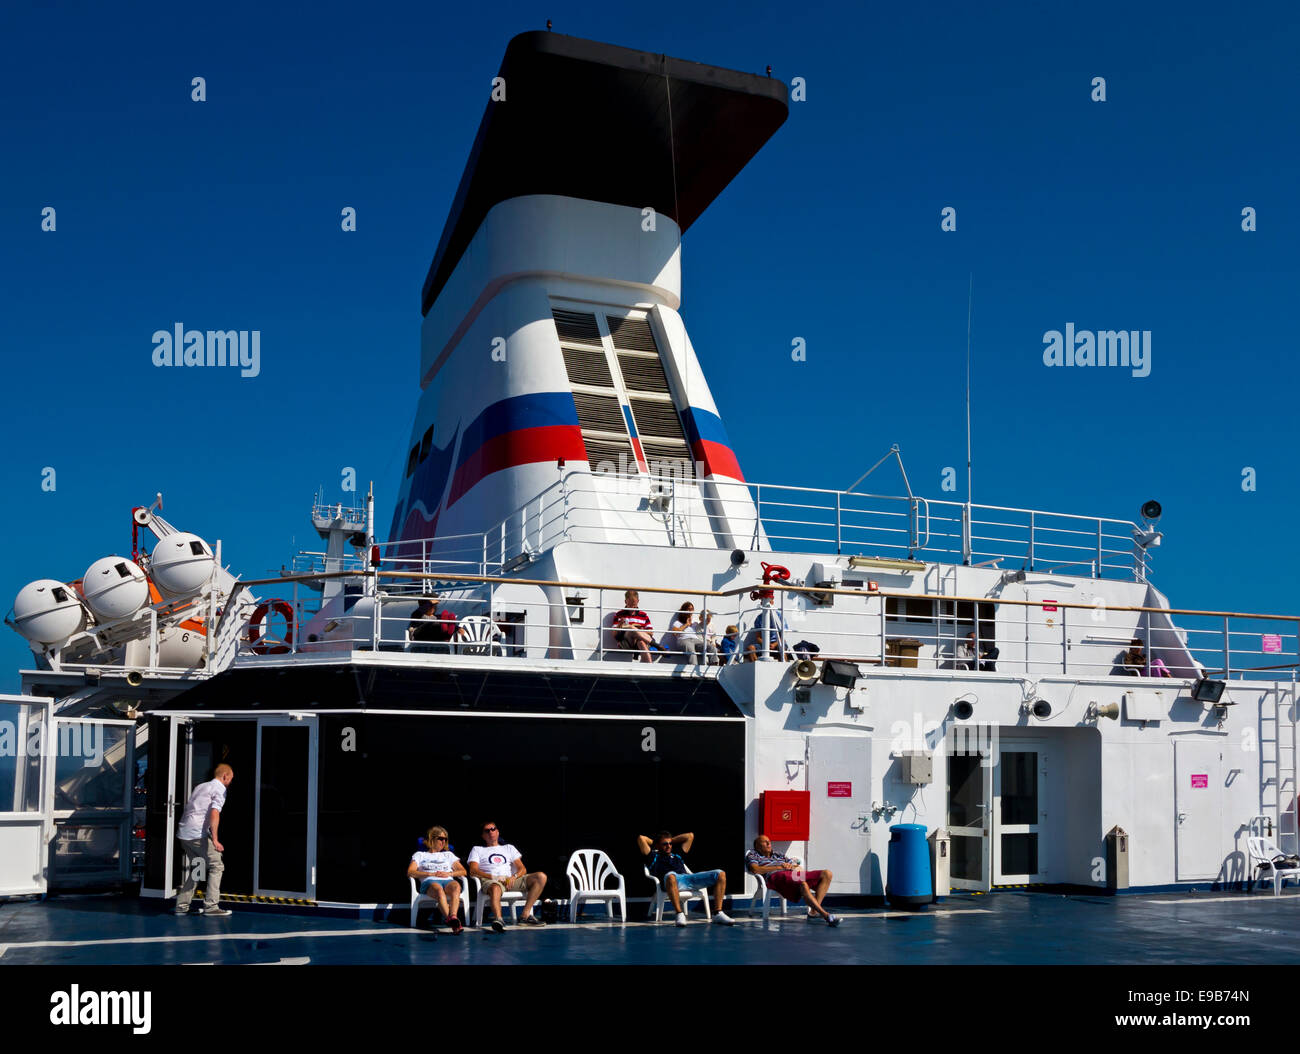 Passengers On The Top Deck Of The Mv Bretagne A Cross Channel